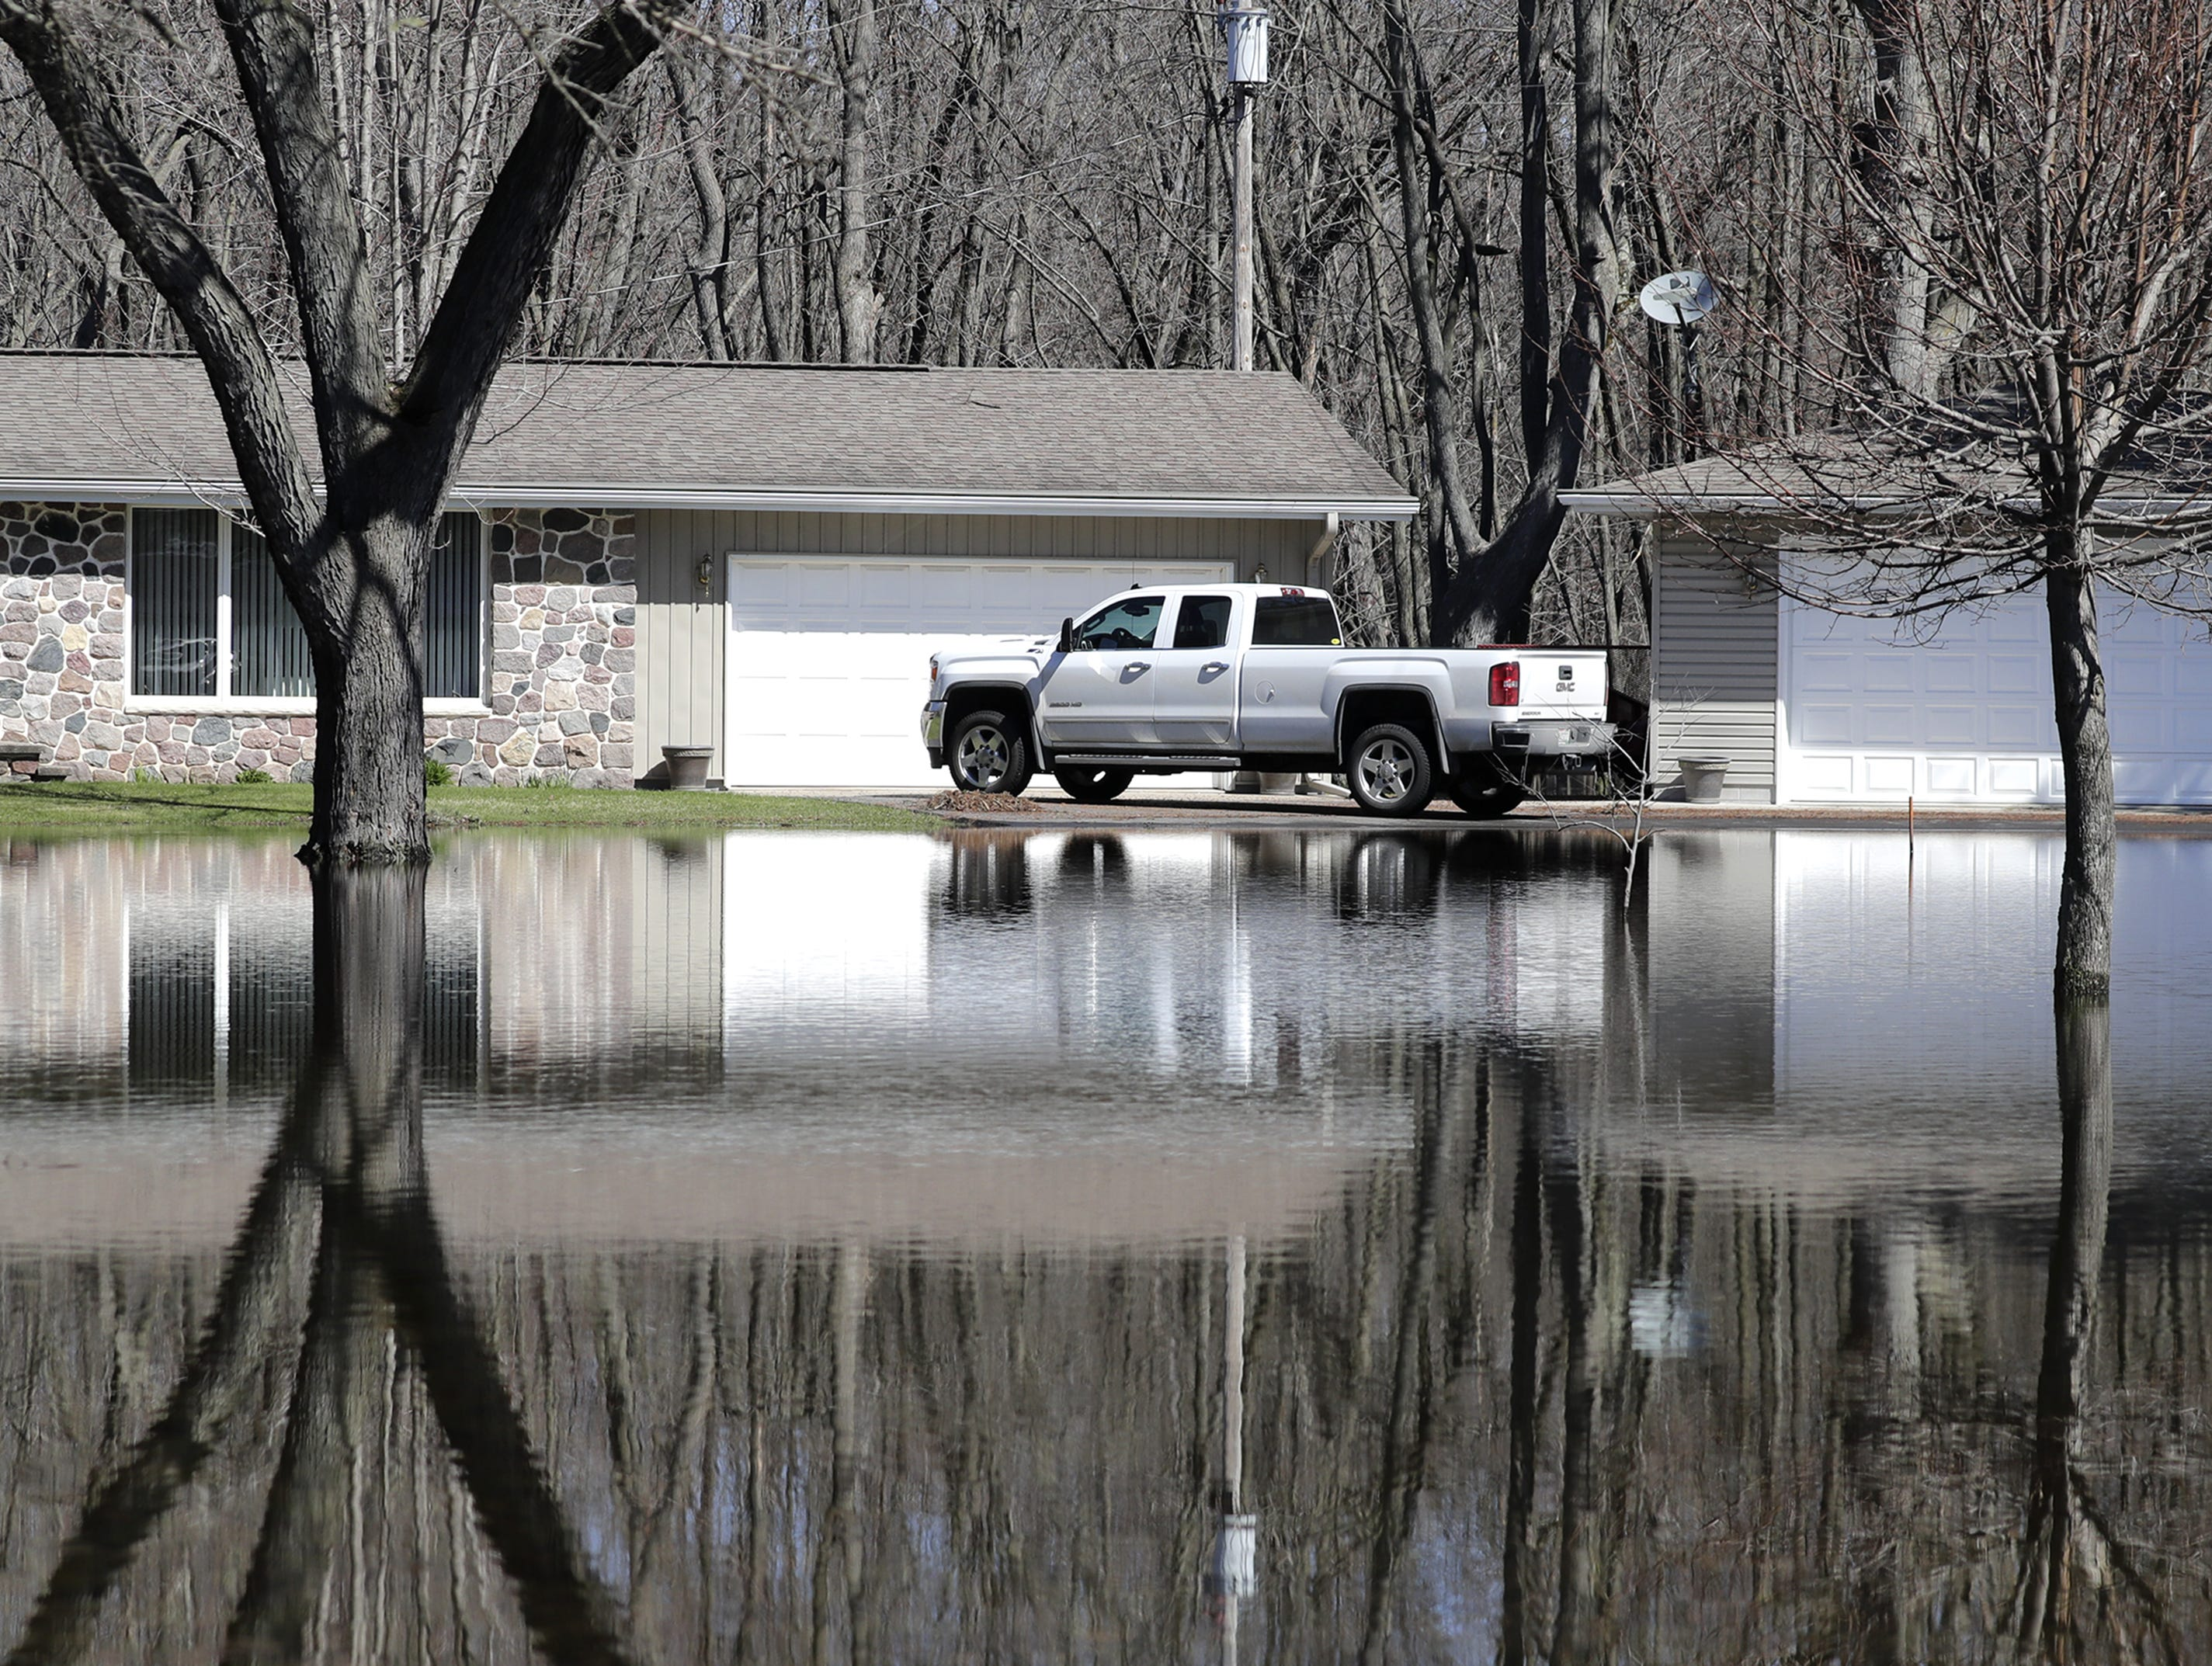 Flooding along the Wolf River on Tuesday, April 23, 2019, in Shiocton, Wis.  Wm. Glasheen/USA TODAY NETWORK-Wisconsin.